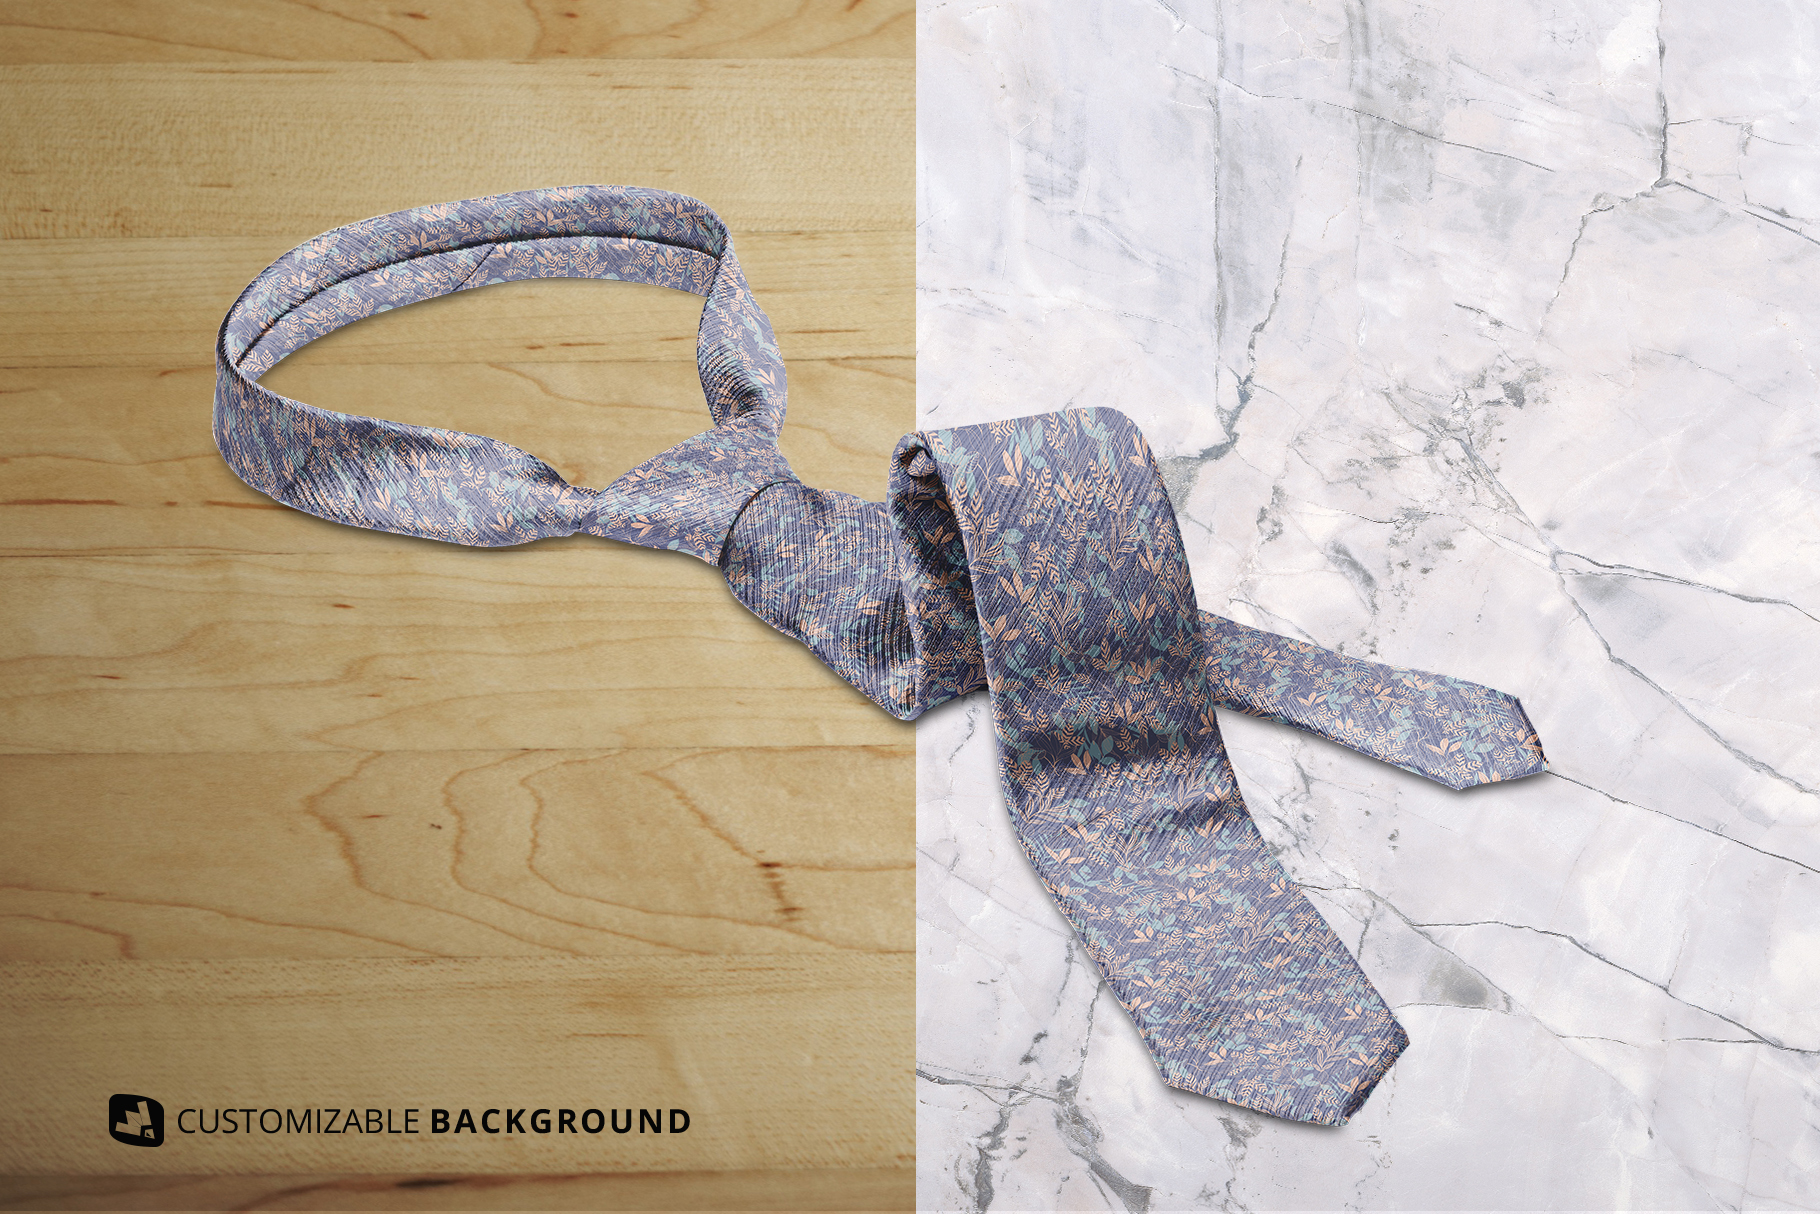 background options of the men's formal tie mockup